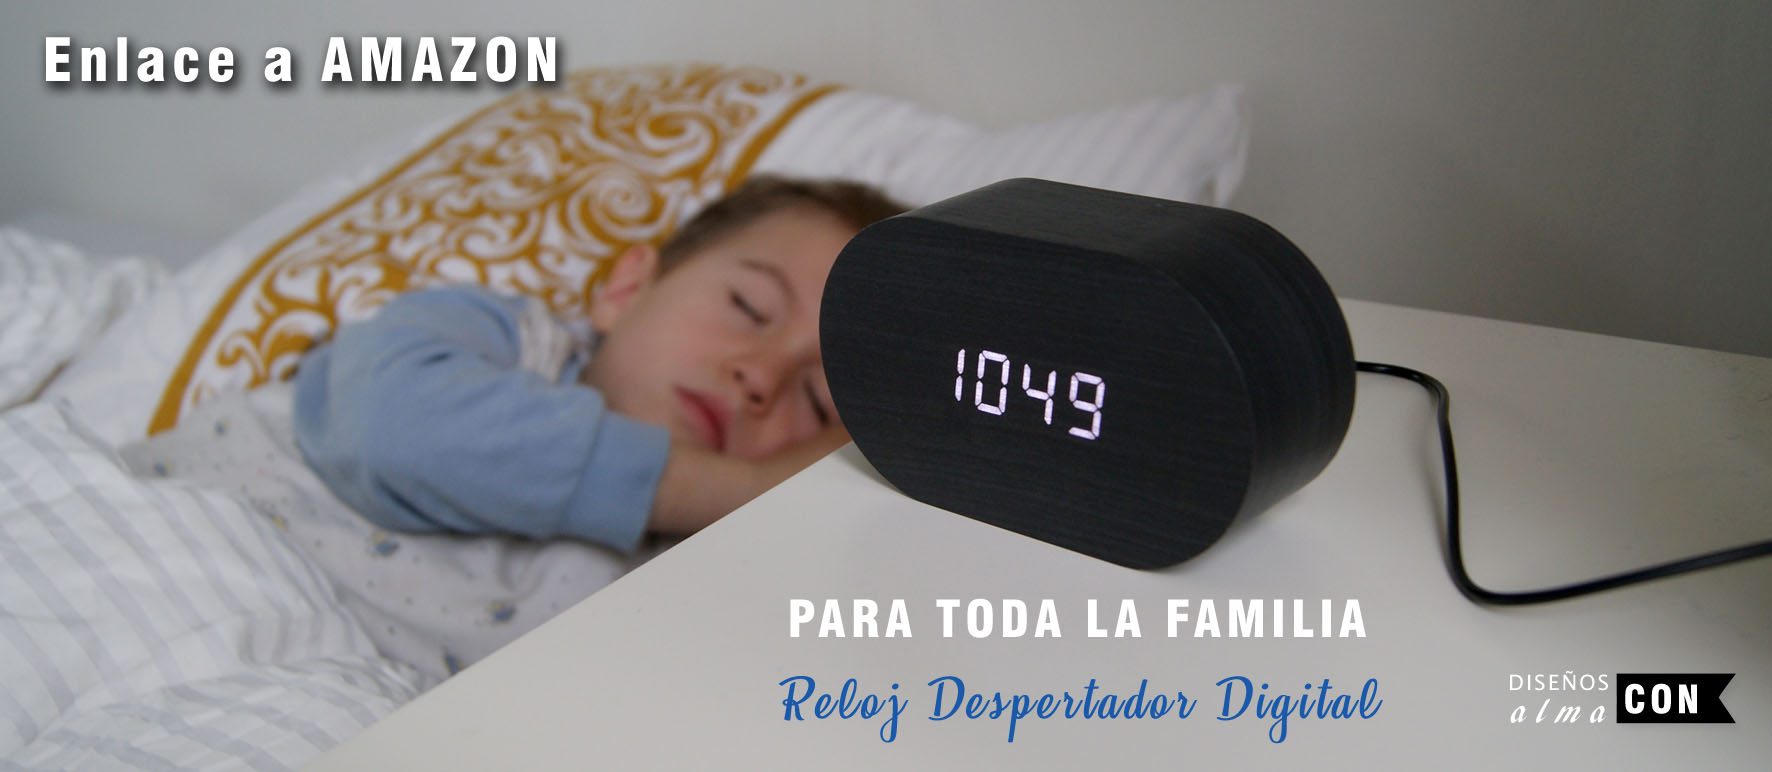 reloj-despertador-digital-sacanelldesign-2